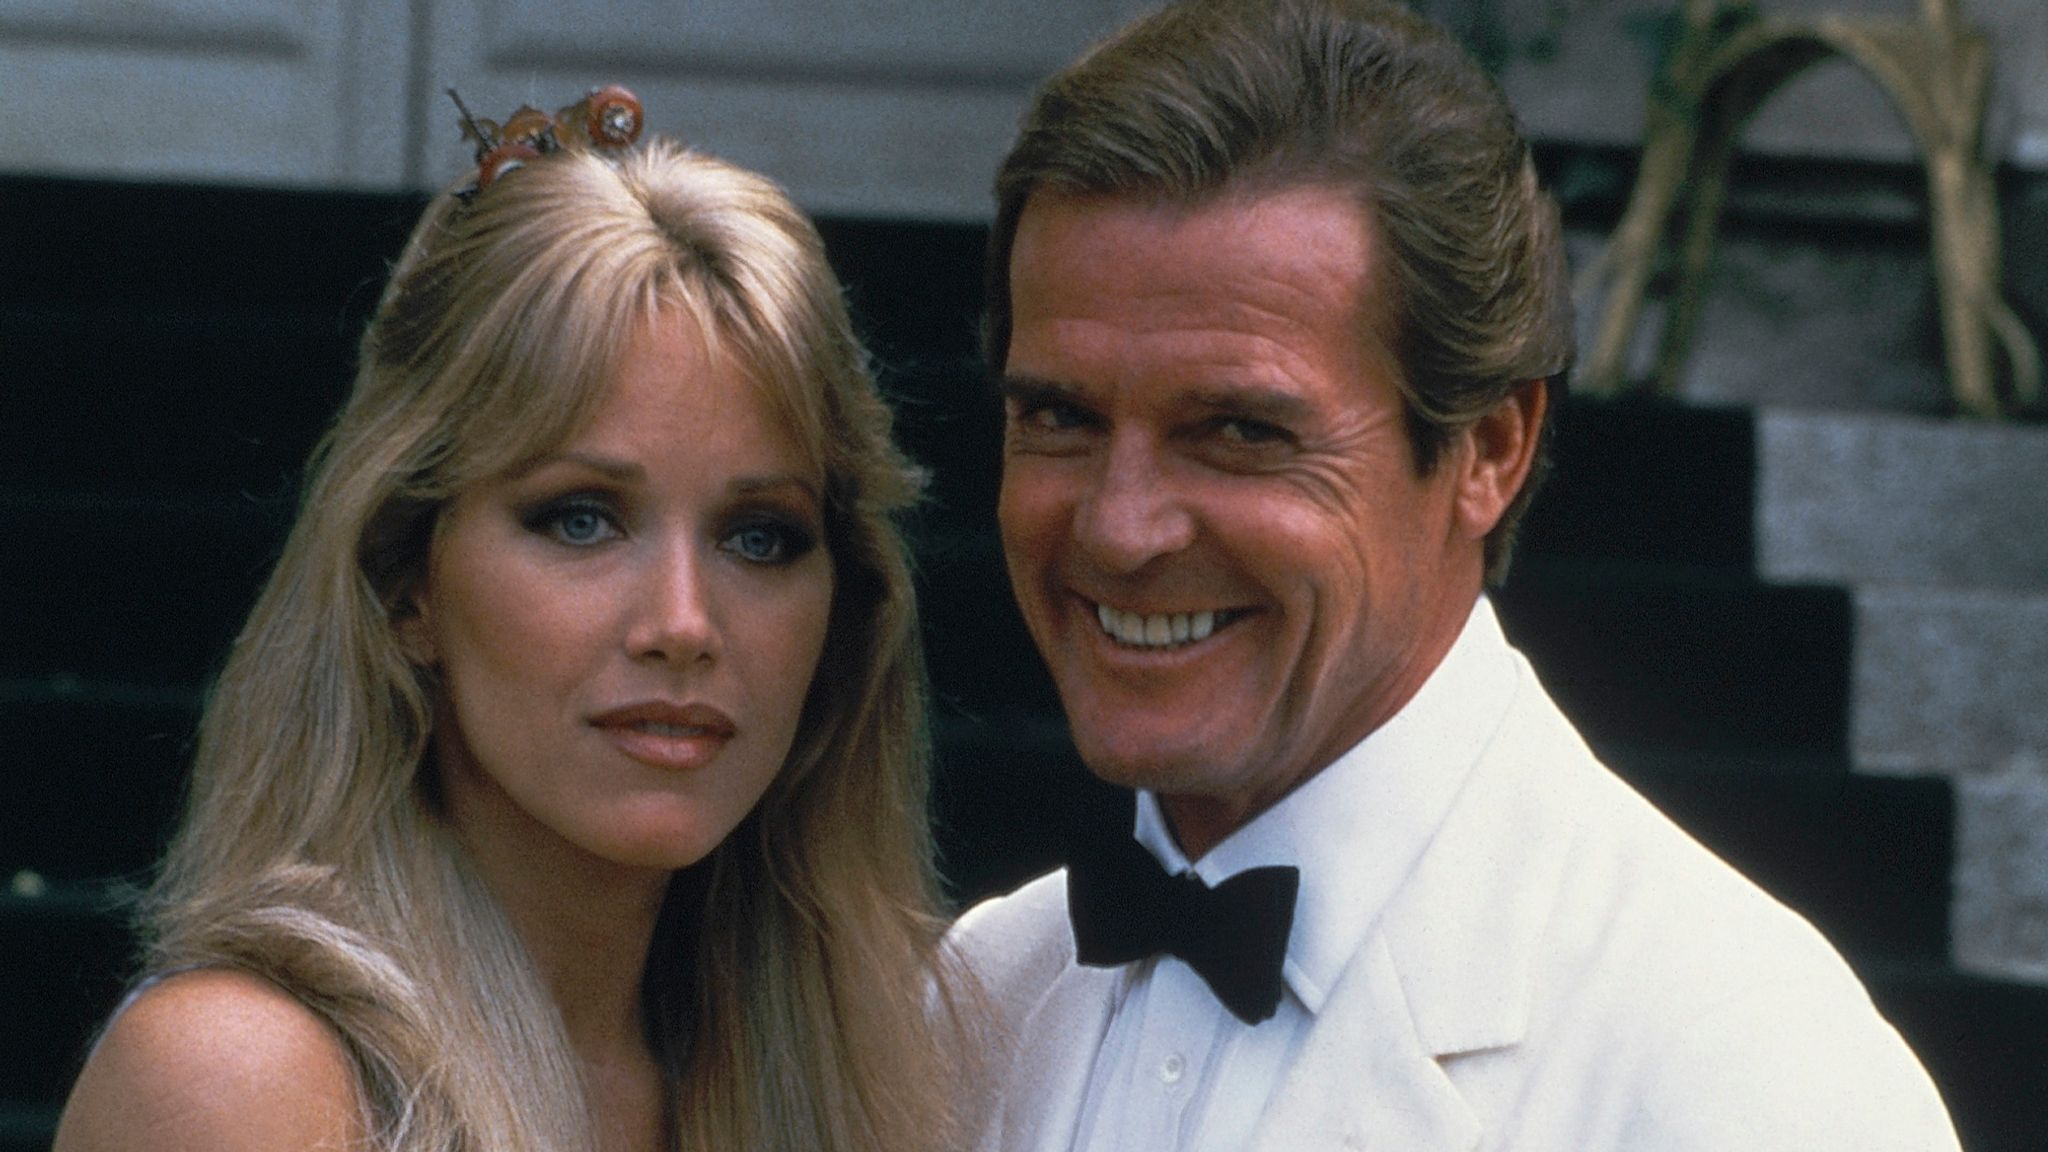 Actor Roger Moore, right, poses with Tanya Roberts, Aug. 17, 1984. (AP Photo/Alexis D.) Photo Details ID: 8408170291 Submission Date: Feb 12, 2009 9:50PM (GMT 21:50) Creation Date: Aug 17, 1984 9:00AM (GMT 08:00)